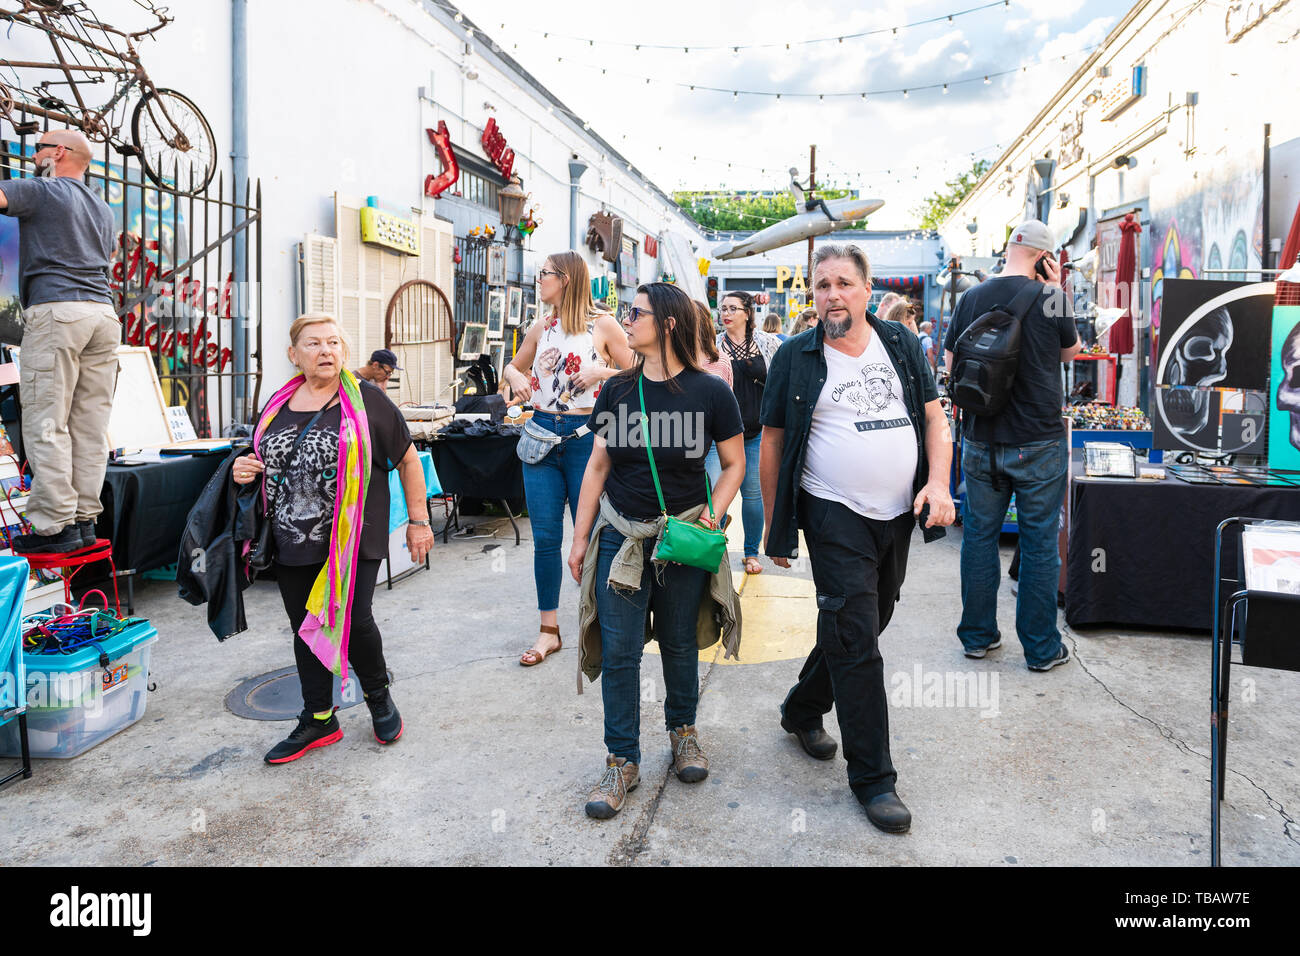 New Orleans, USA - April 22, 2018: Decatur street in Louisiana famous city and antique outdoor art store with people shopping - Stock Image